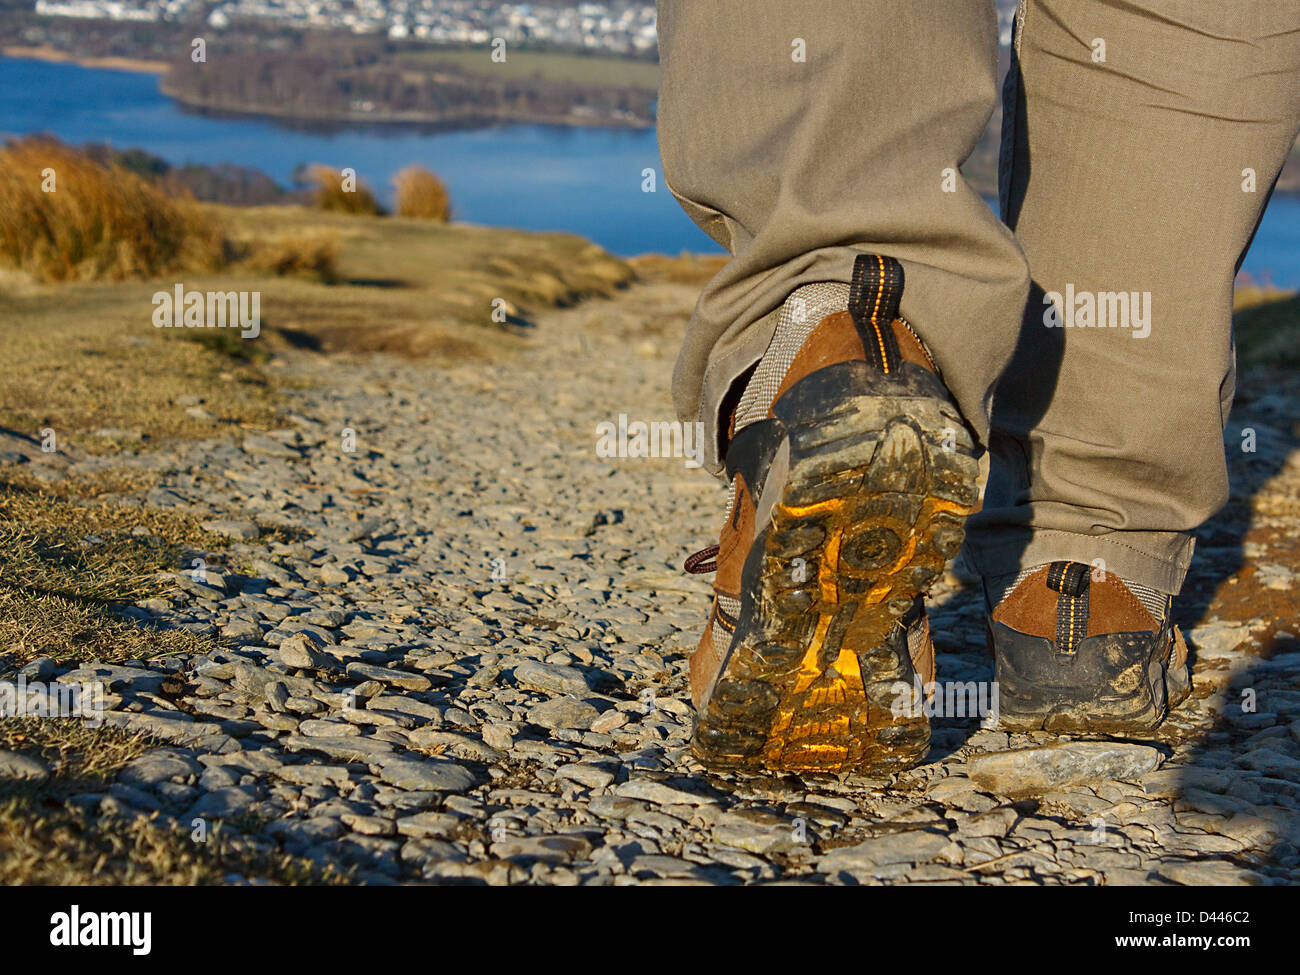 Walker on day trek in the Lake District with close up on outdoor footwear and the background scenery - Stock Image